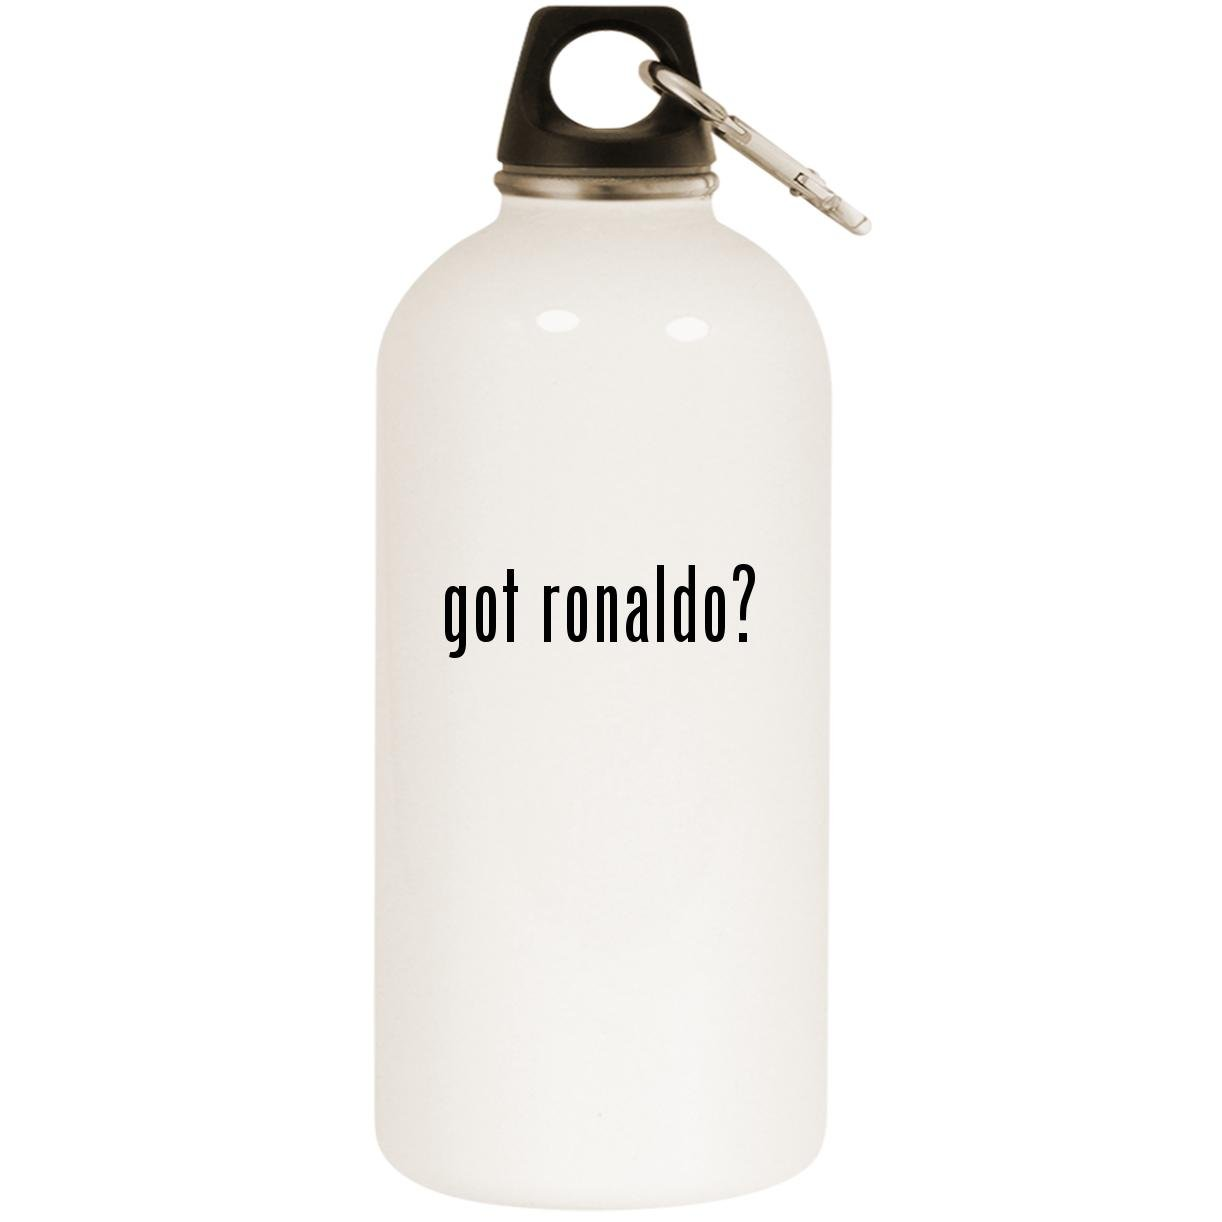 got ronaldo? - White 20oz Stainless Steel Water Bottle with Carabiner